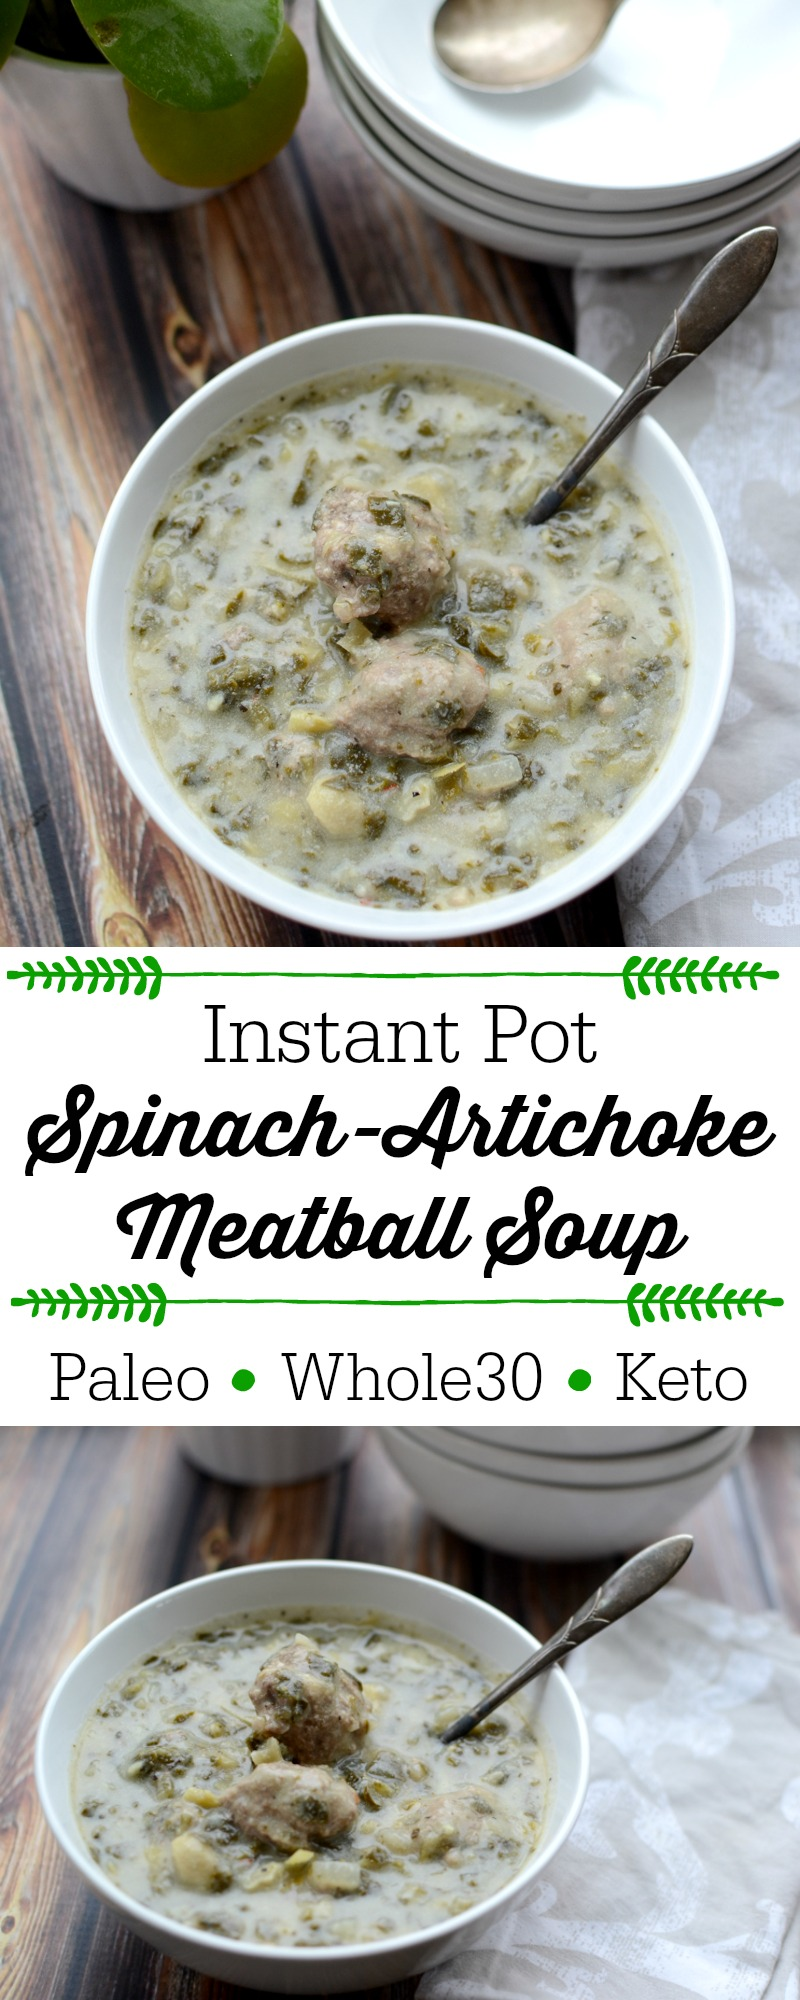 I was craving spinach and artichoke dip (without the dairy, of course) AND meatballs -- so I put them together and hoped it would work! Happily, it did! The result is a creamy, hearty, filling, and nourishing low-carb, veggie-filled soup! This Instant Pot Spinach-Artichoke Meatball Soup is Paleo, Whole30, and Keto-friendly!